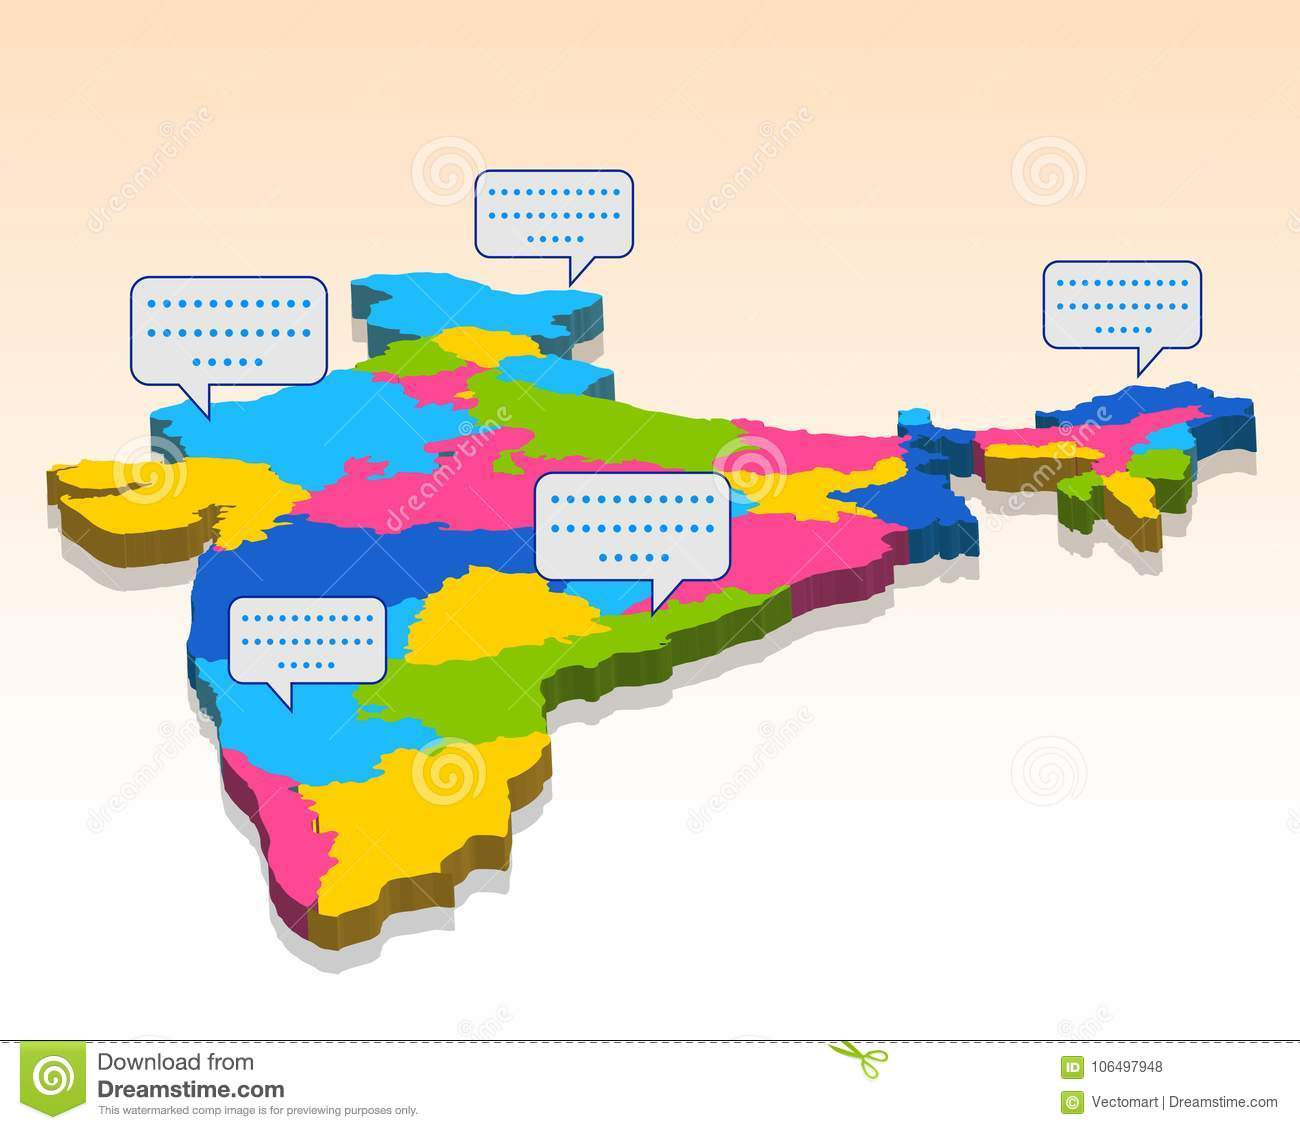 Boundary Map Of Asia.Detailed 3d Map Of India Asia With All States And Country Boundary